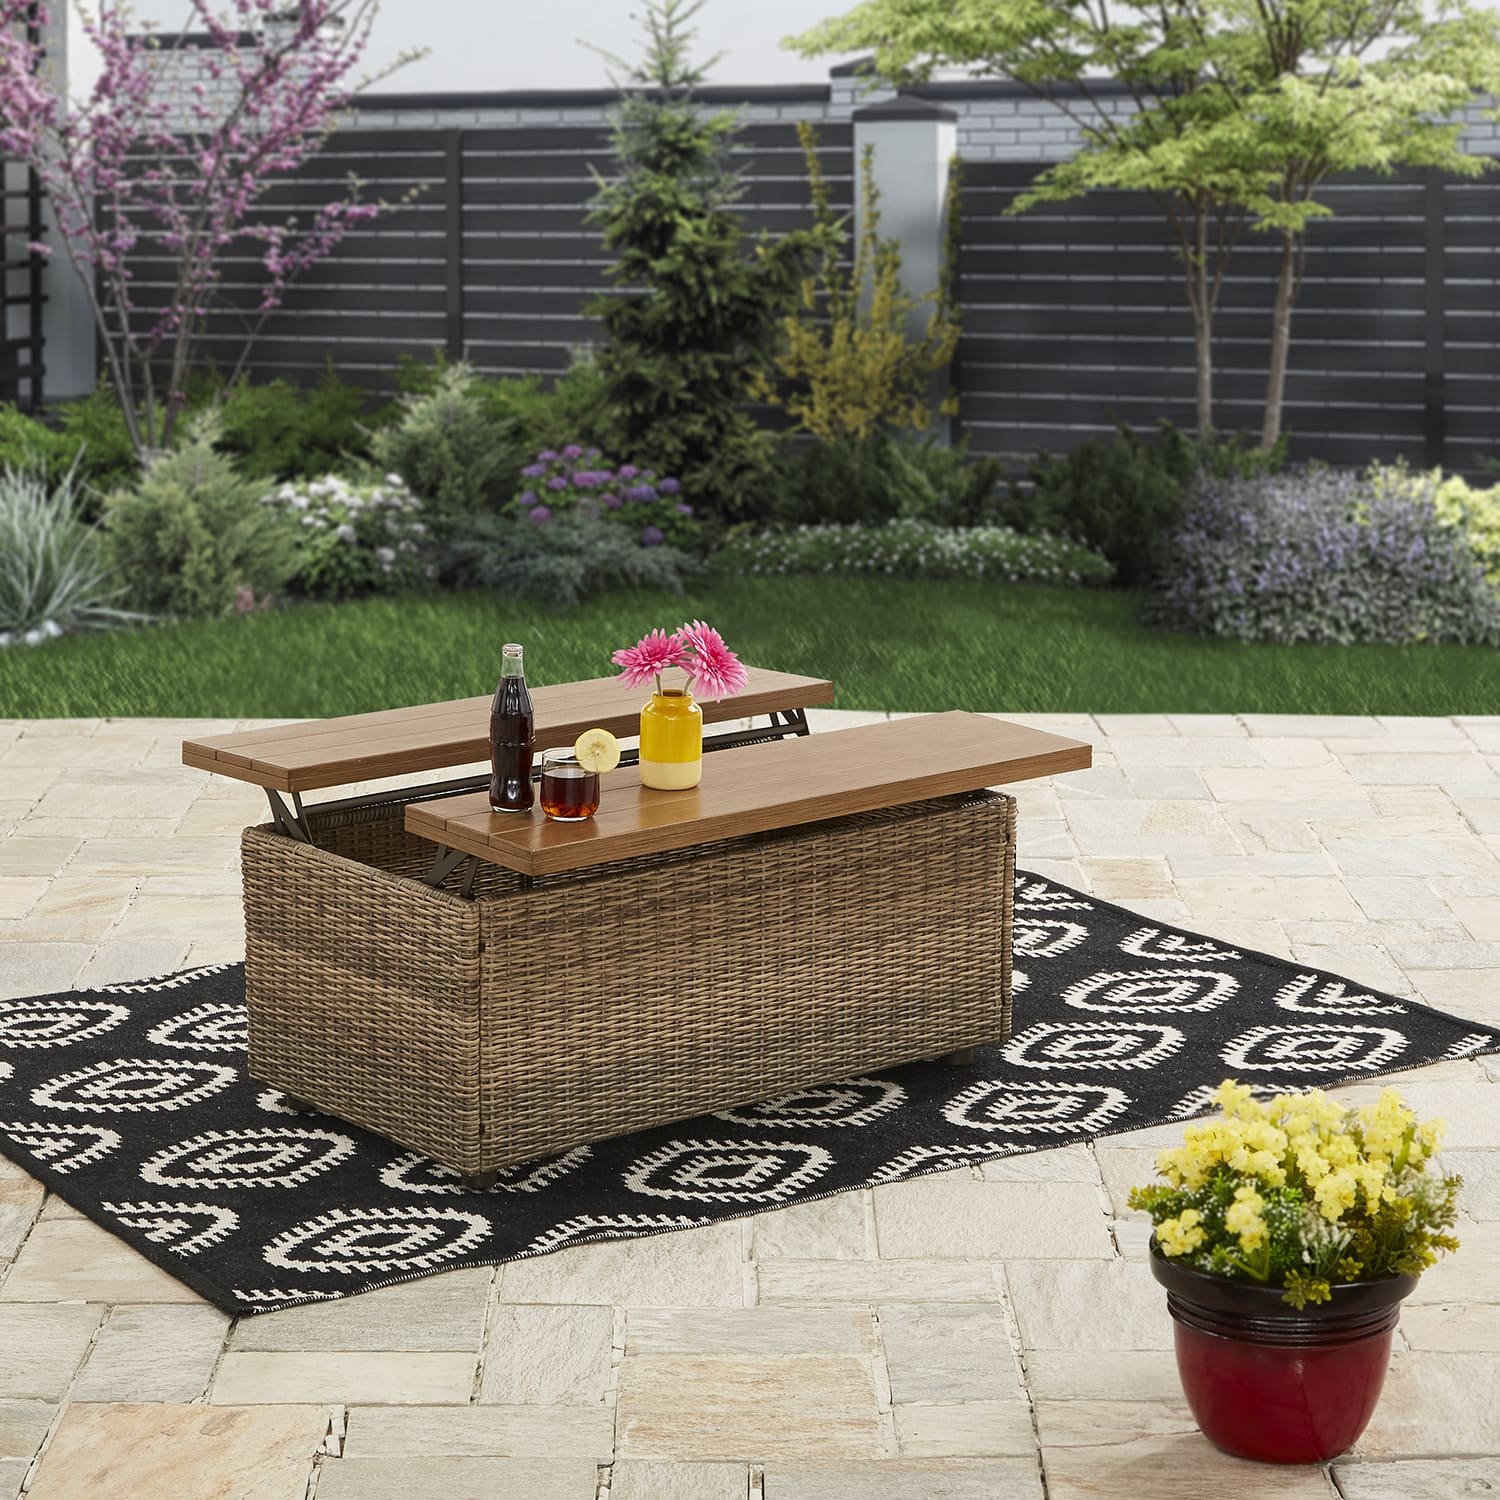 Better Homes and Gardens Adley River Outdoor Deck Box $79